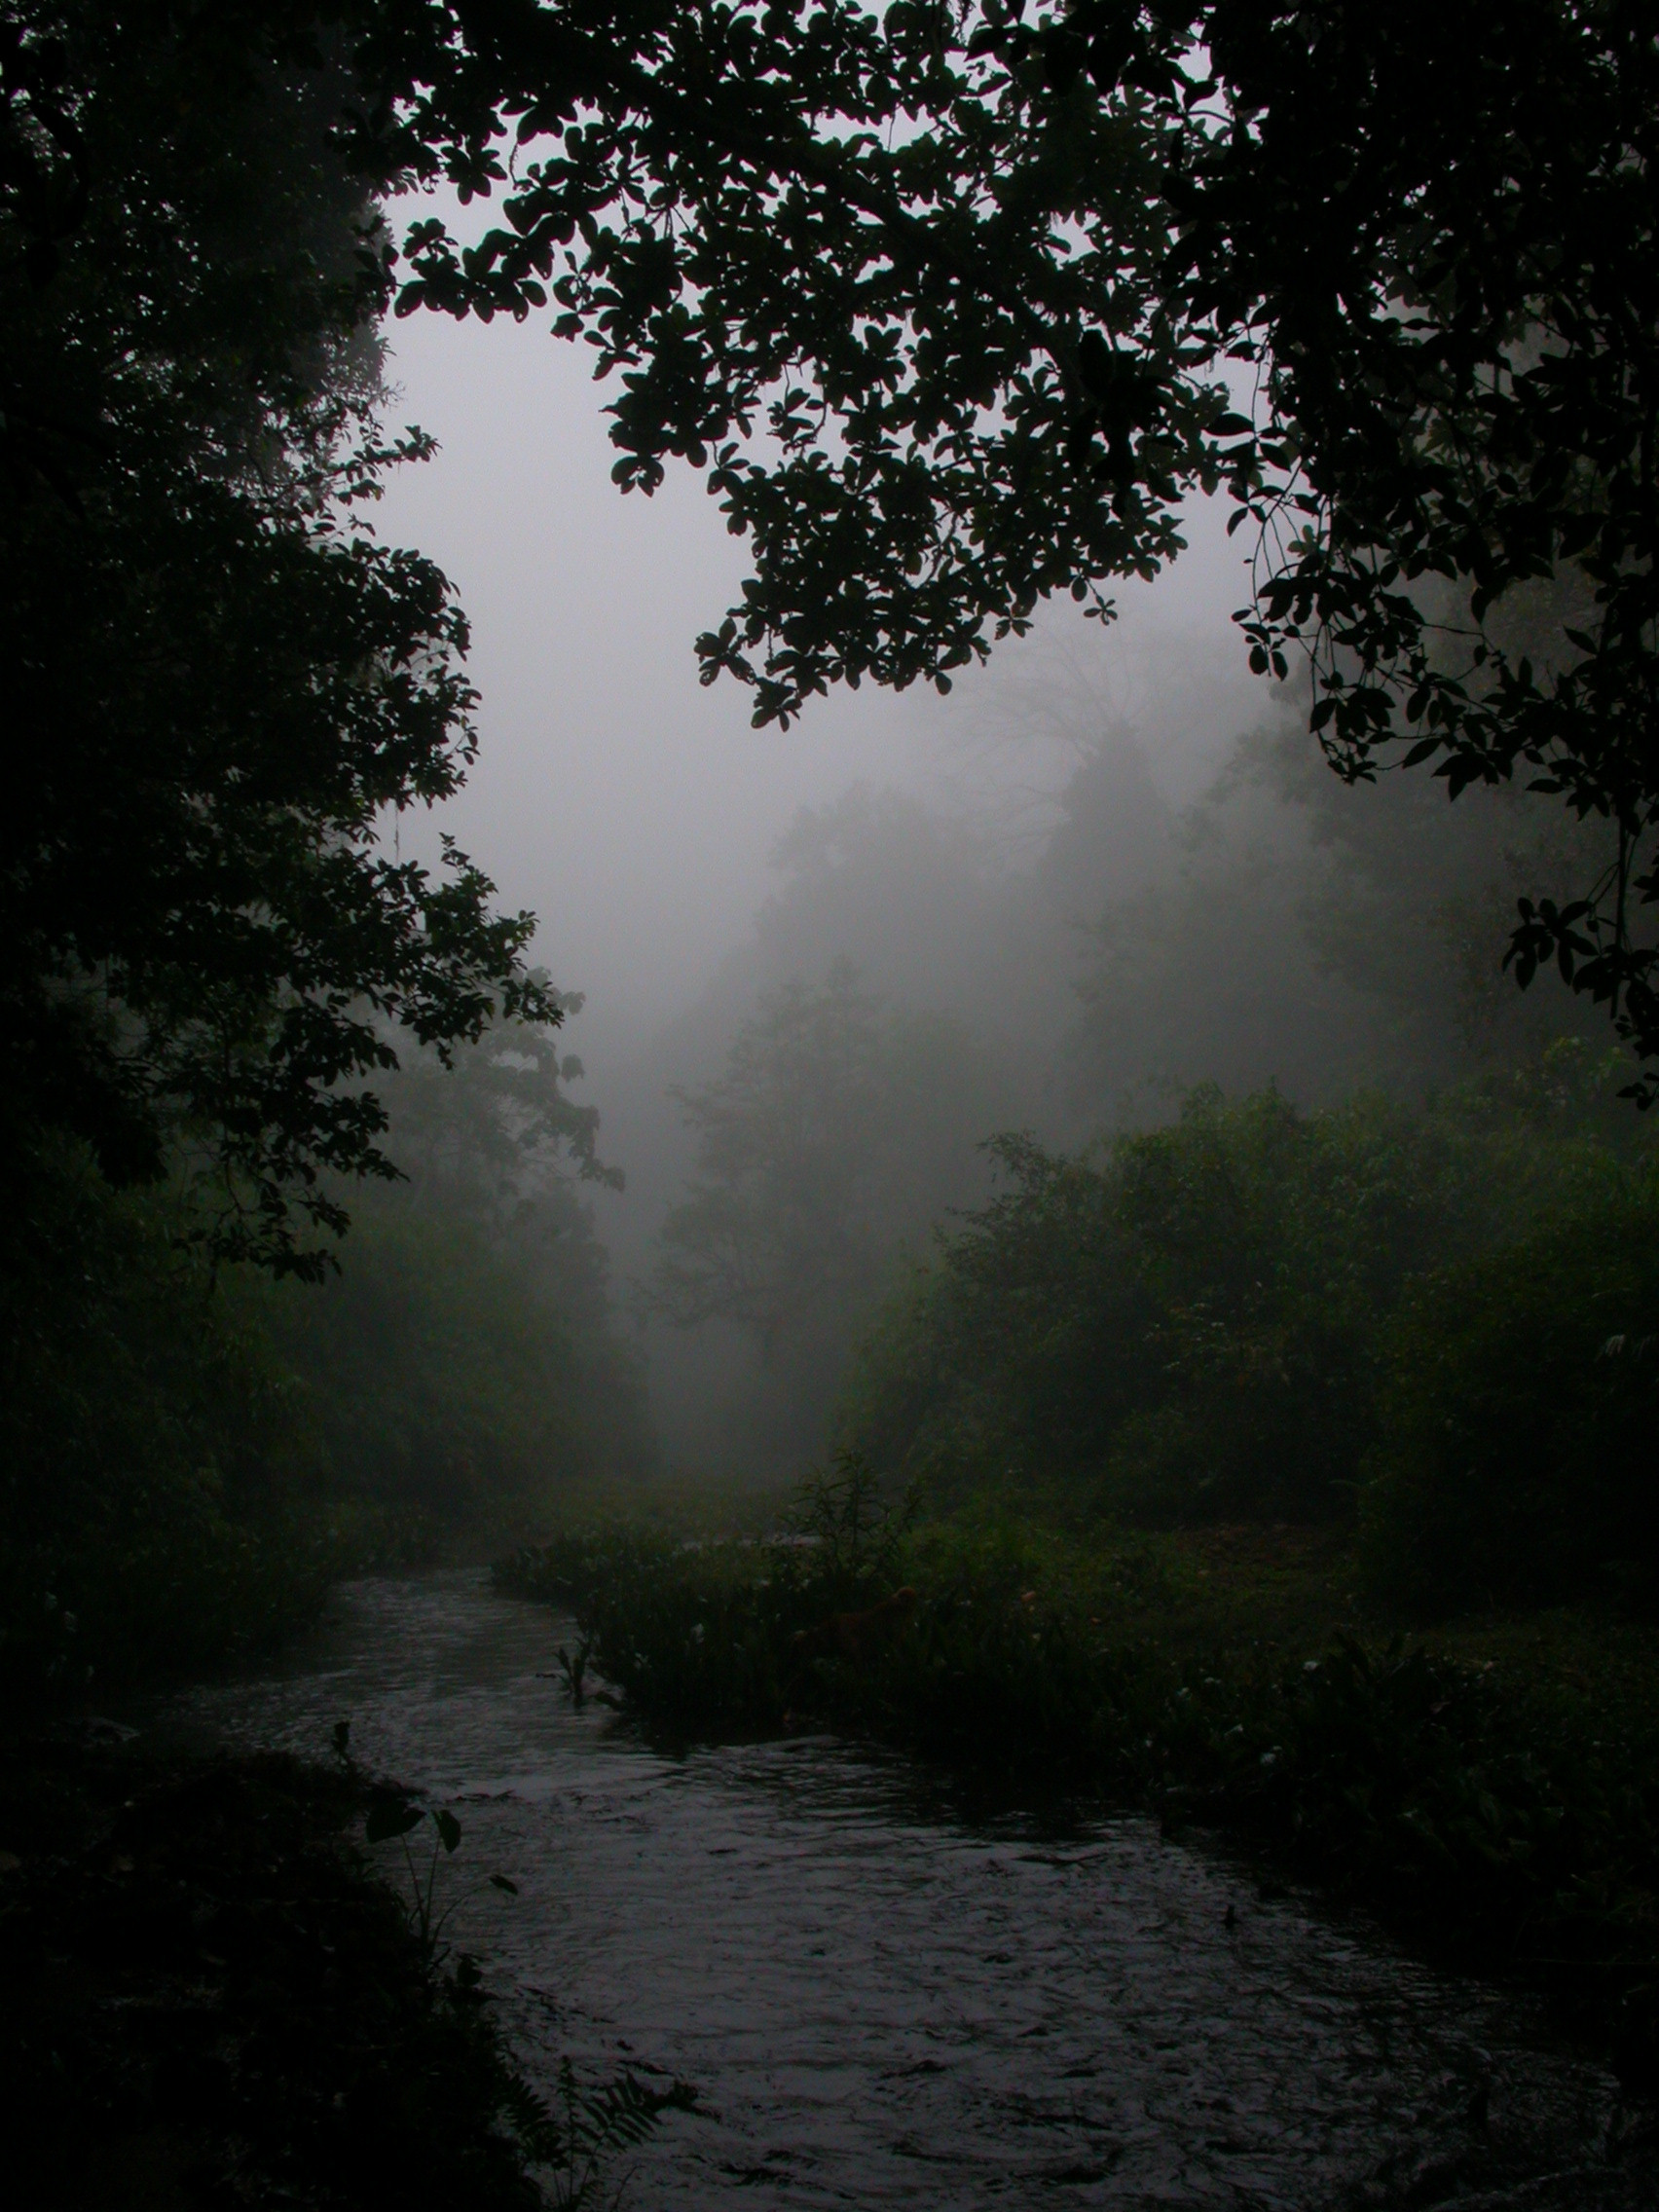 A monsoon stream in Wayanad. Photo credit: Gurukula Botanical Sanctuary Archives